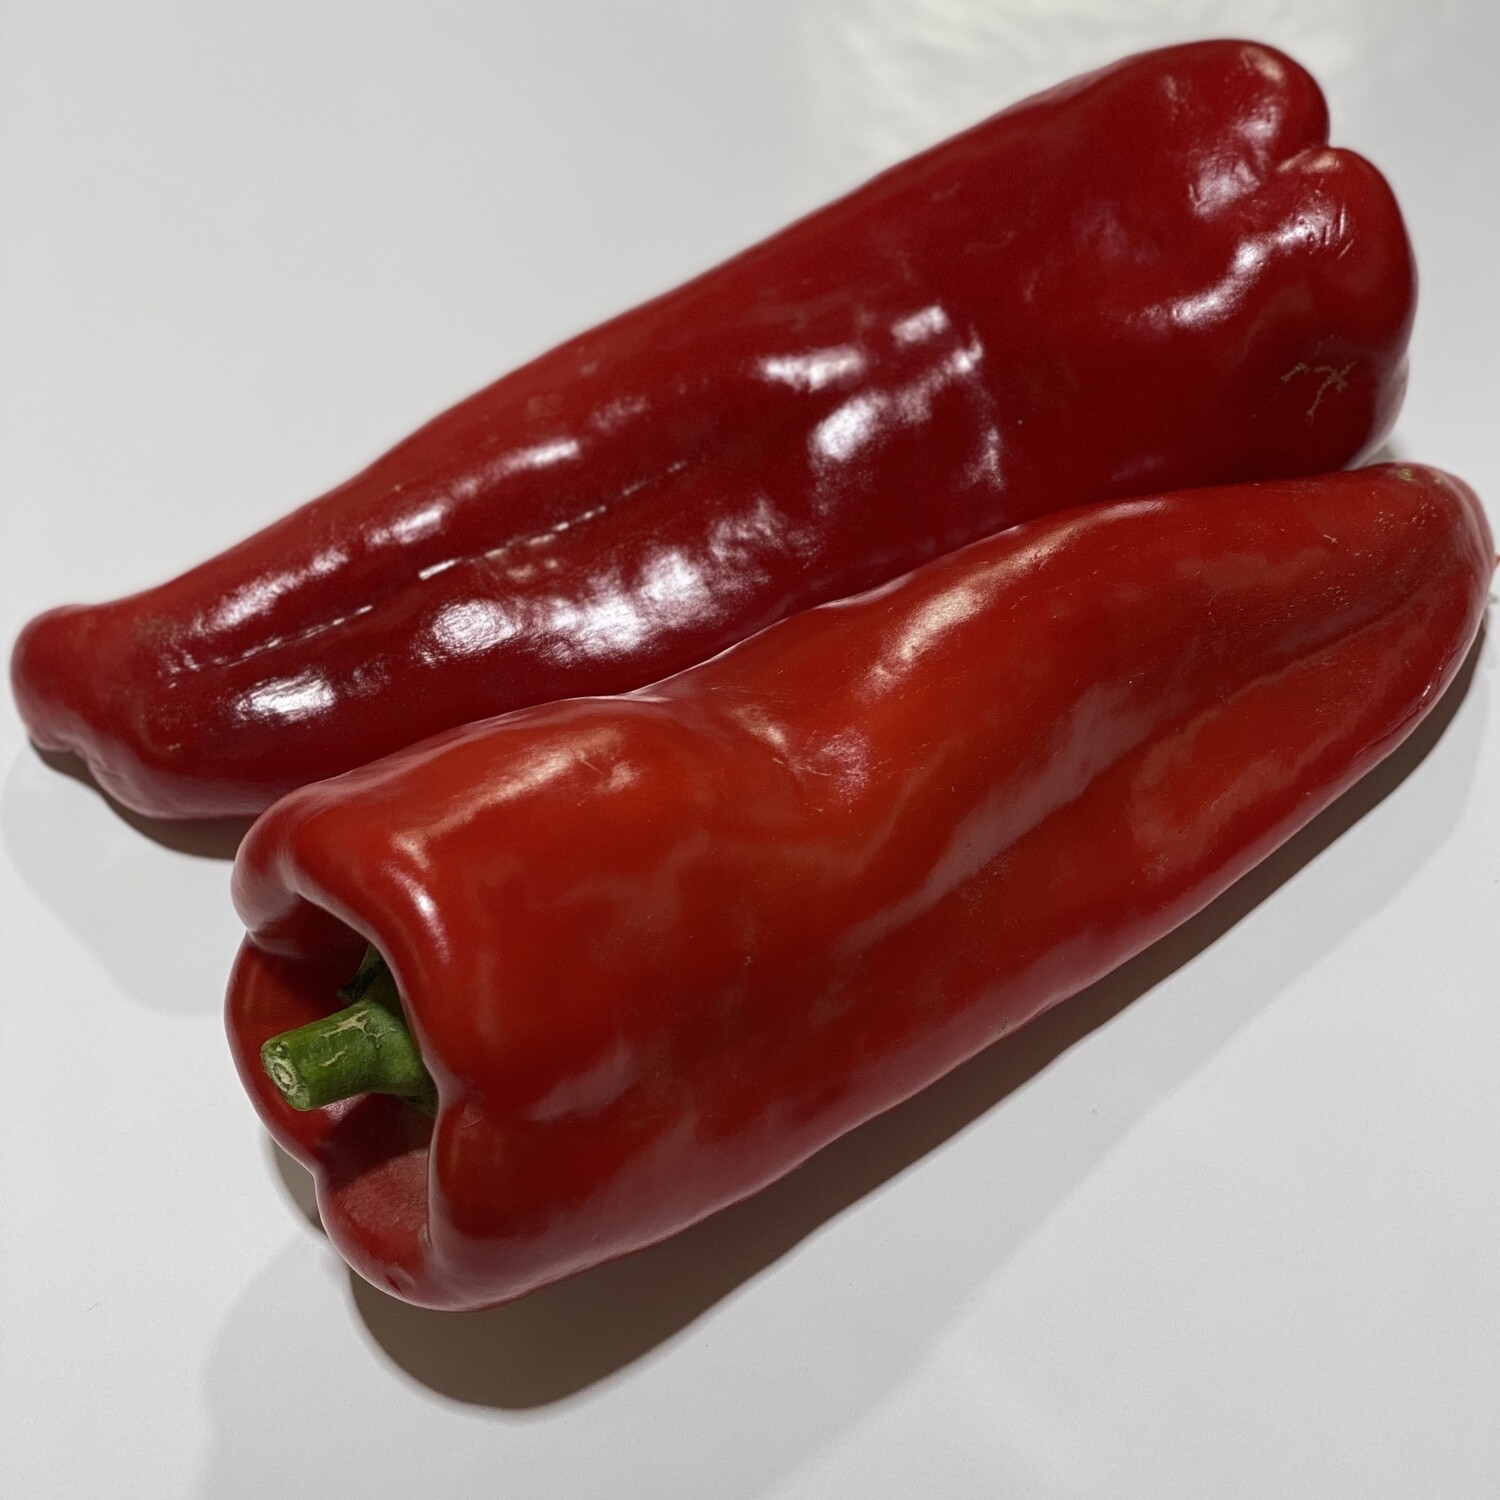 CAPSICUM RED (LONG SWEET PEPPERS)